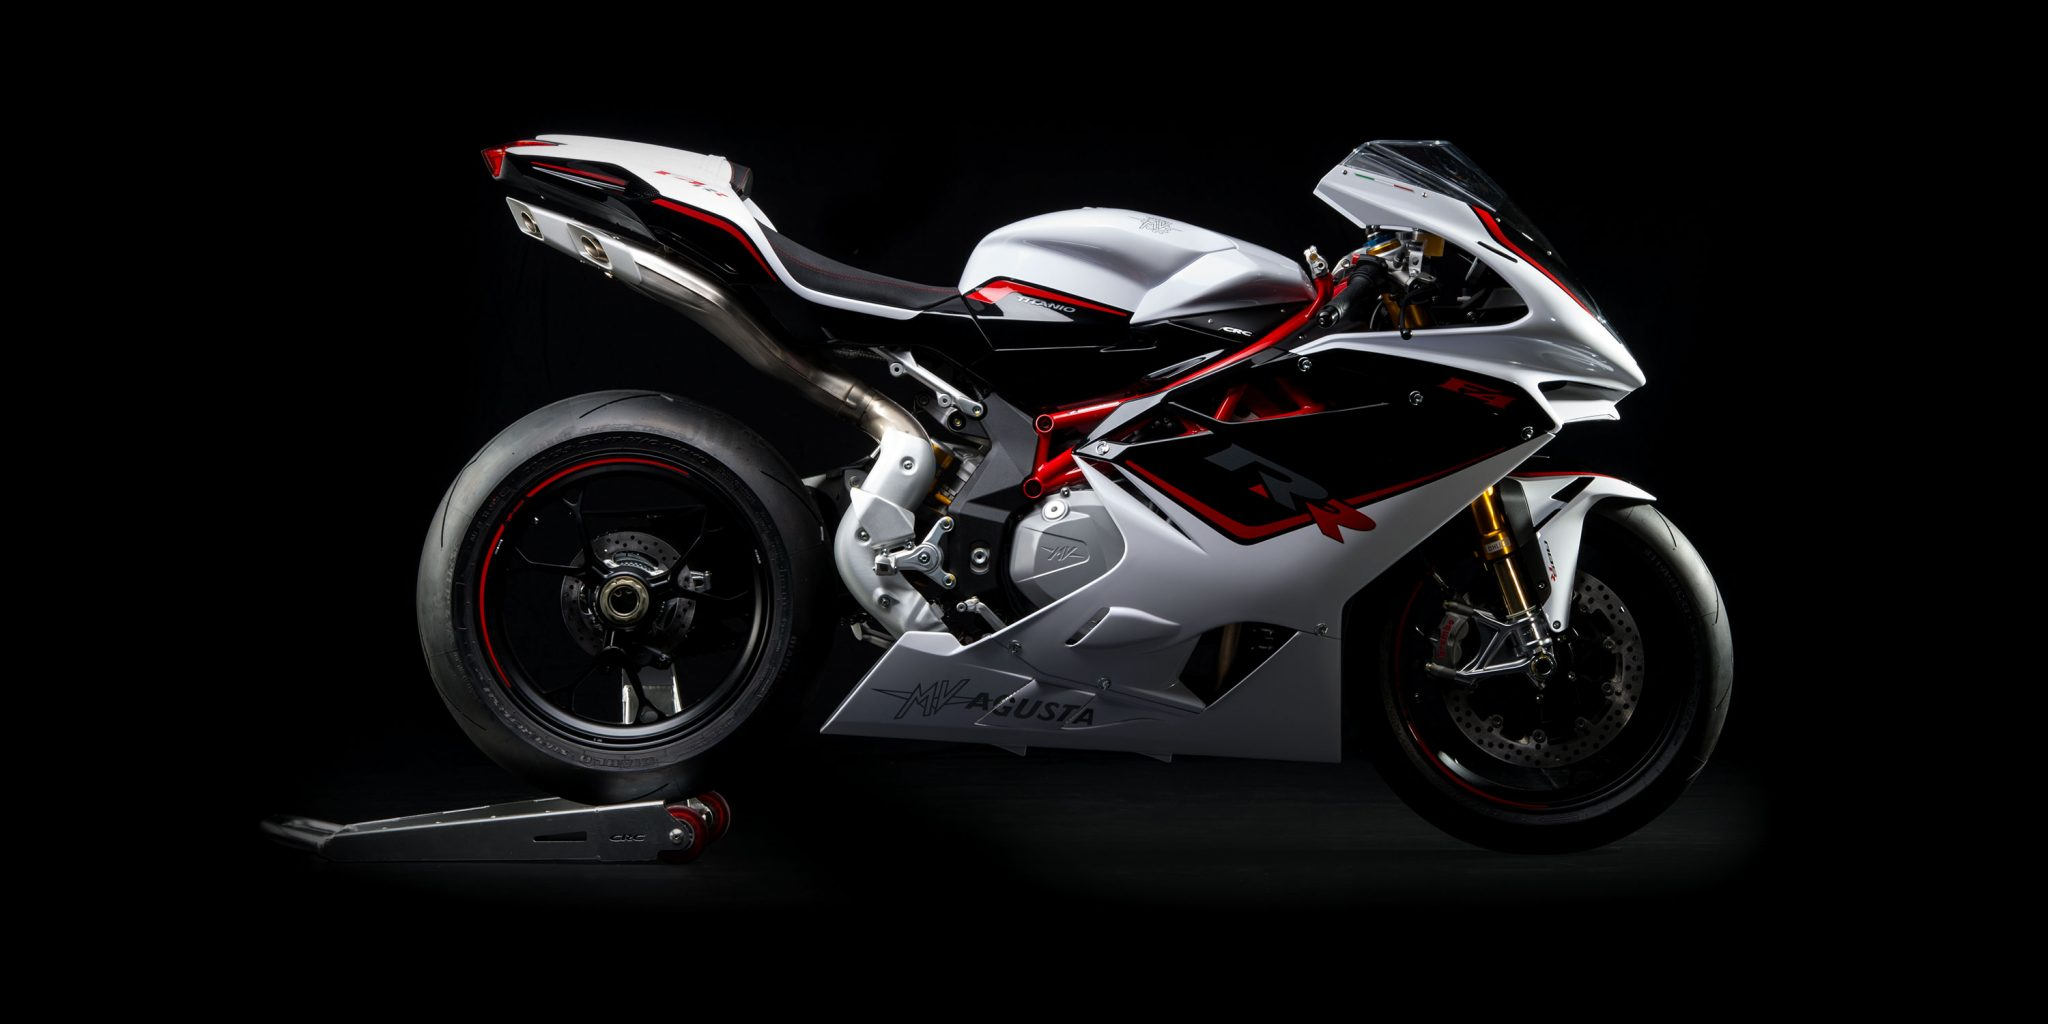 MV Agusta to come up with jet-powered motorcycle by 2019?